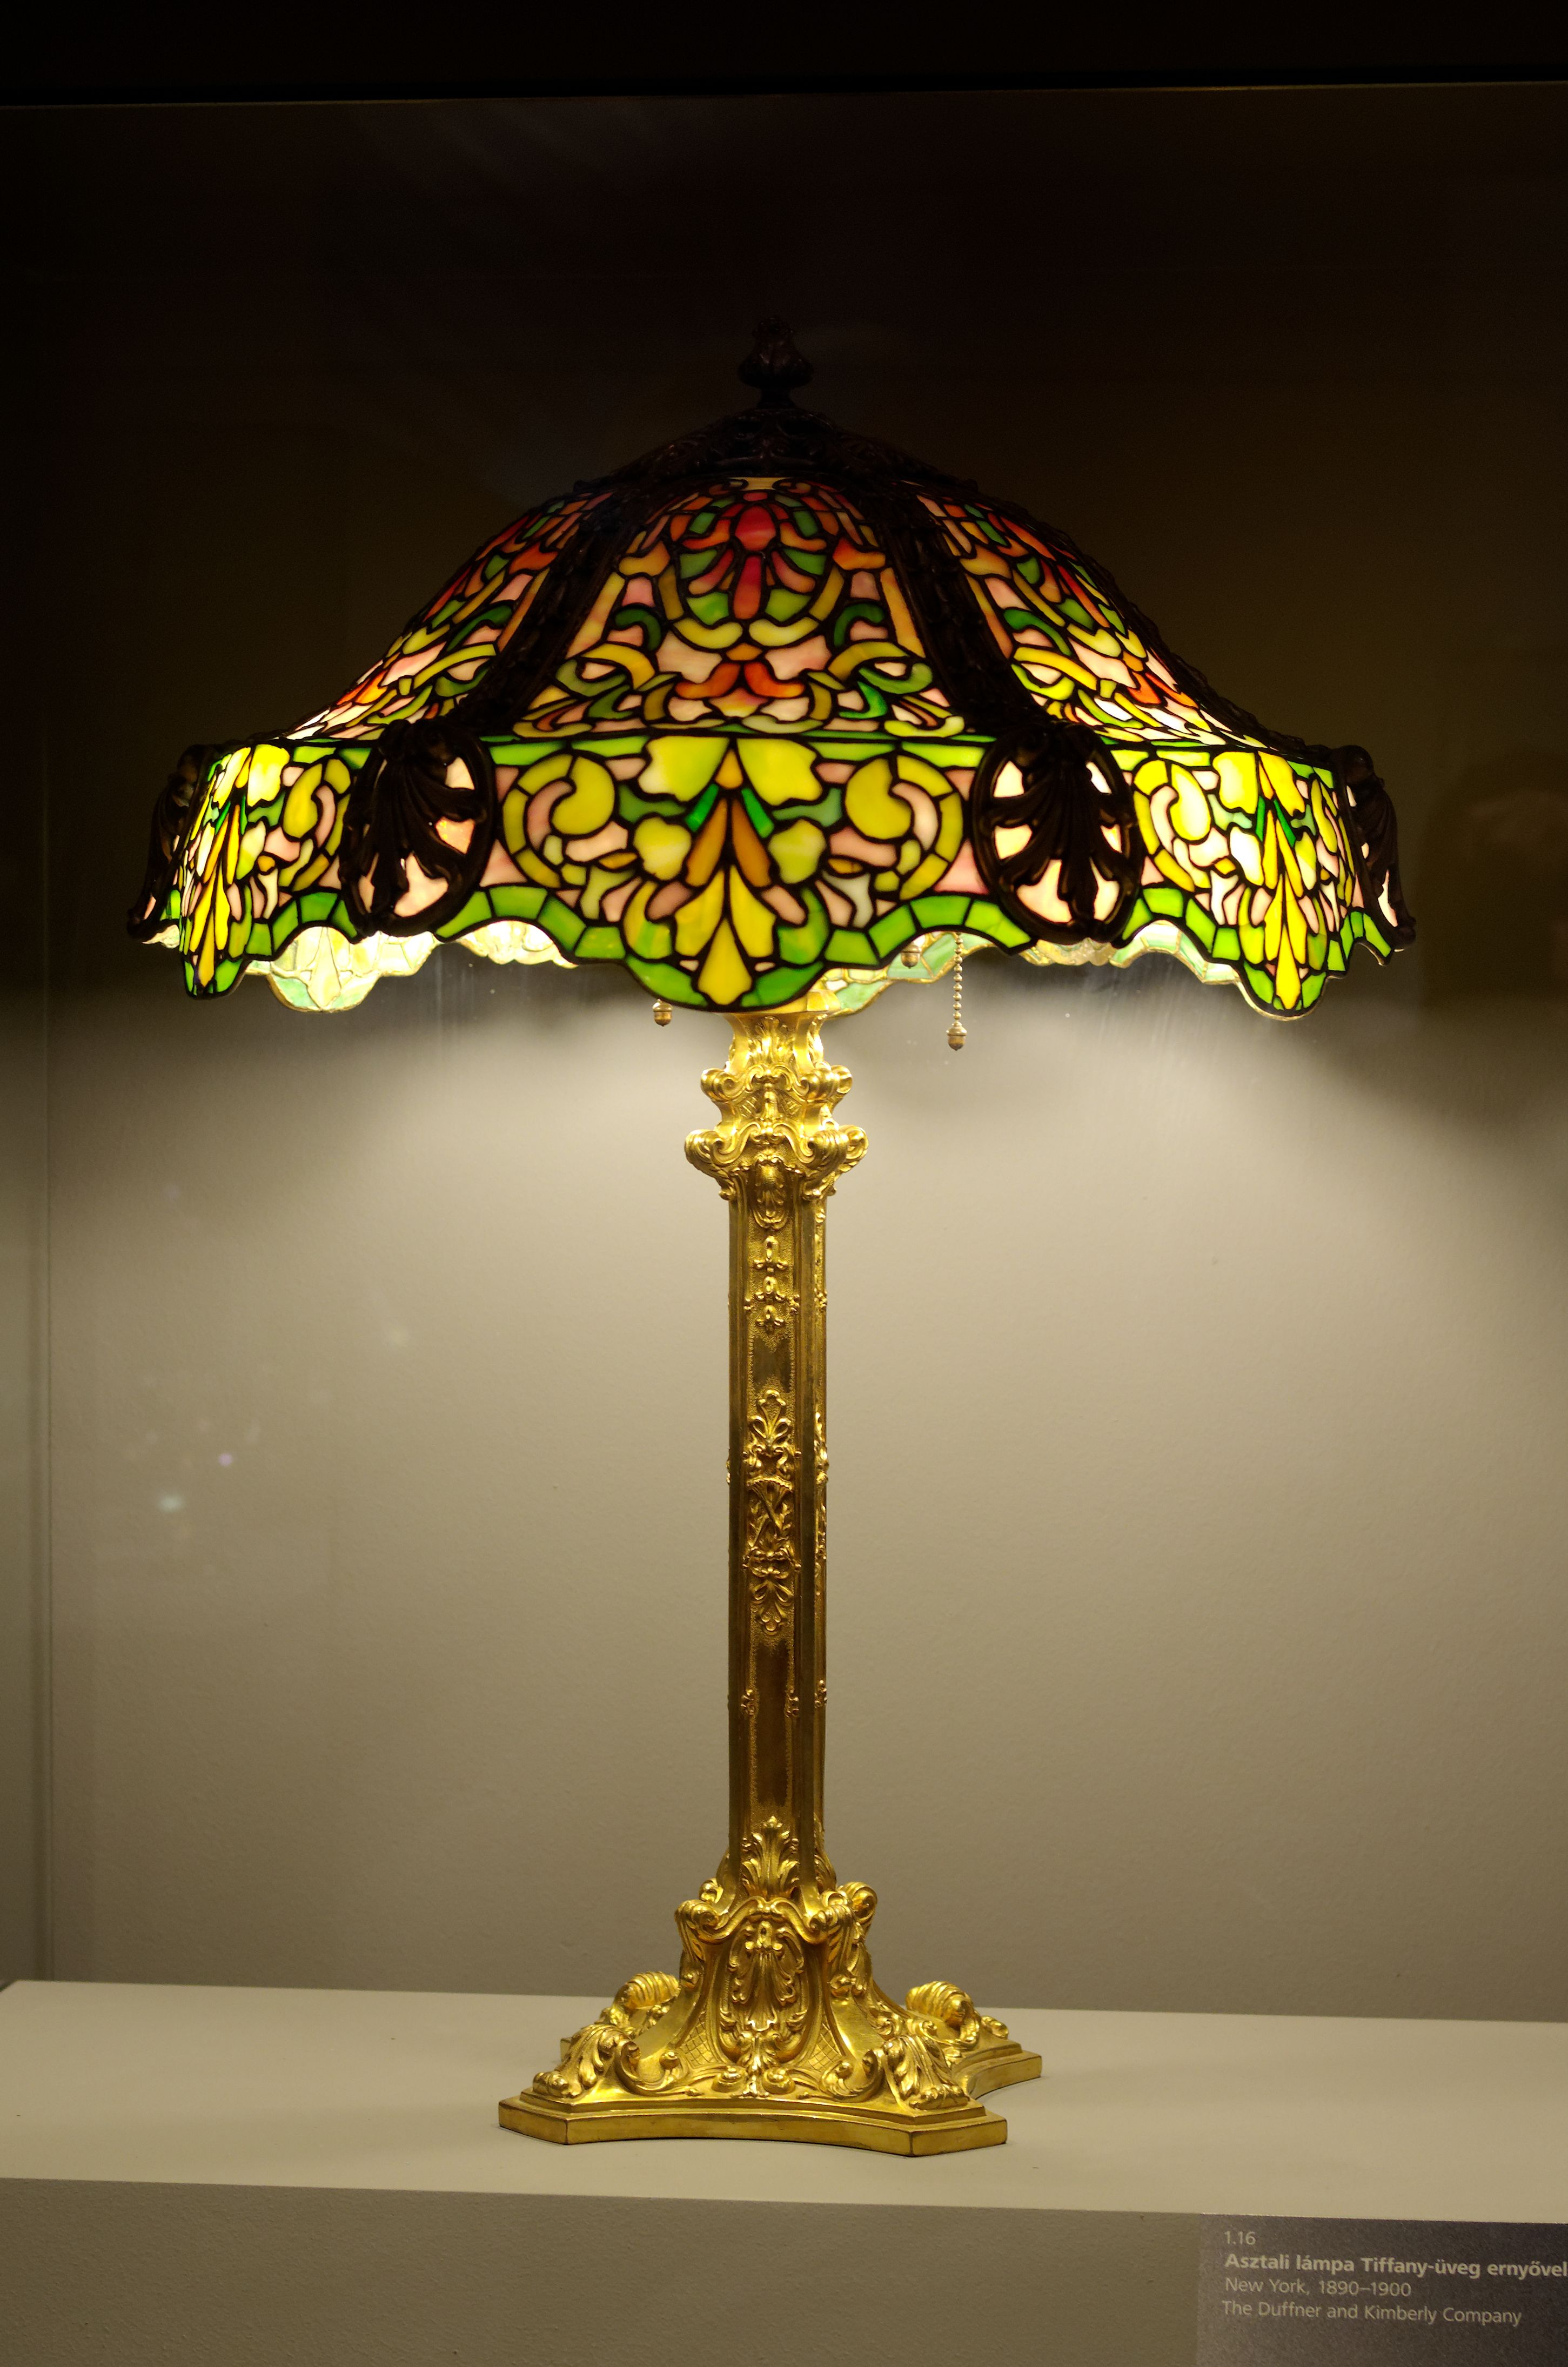 Lampe Tiffany 1890 1900 Tiffany Lamps Tiffany Stained Glass